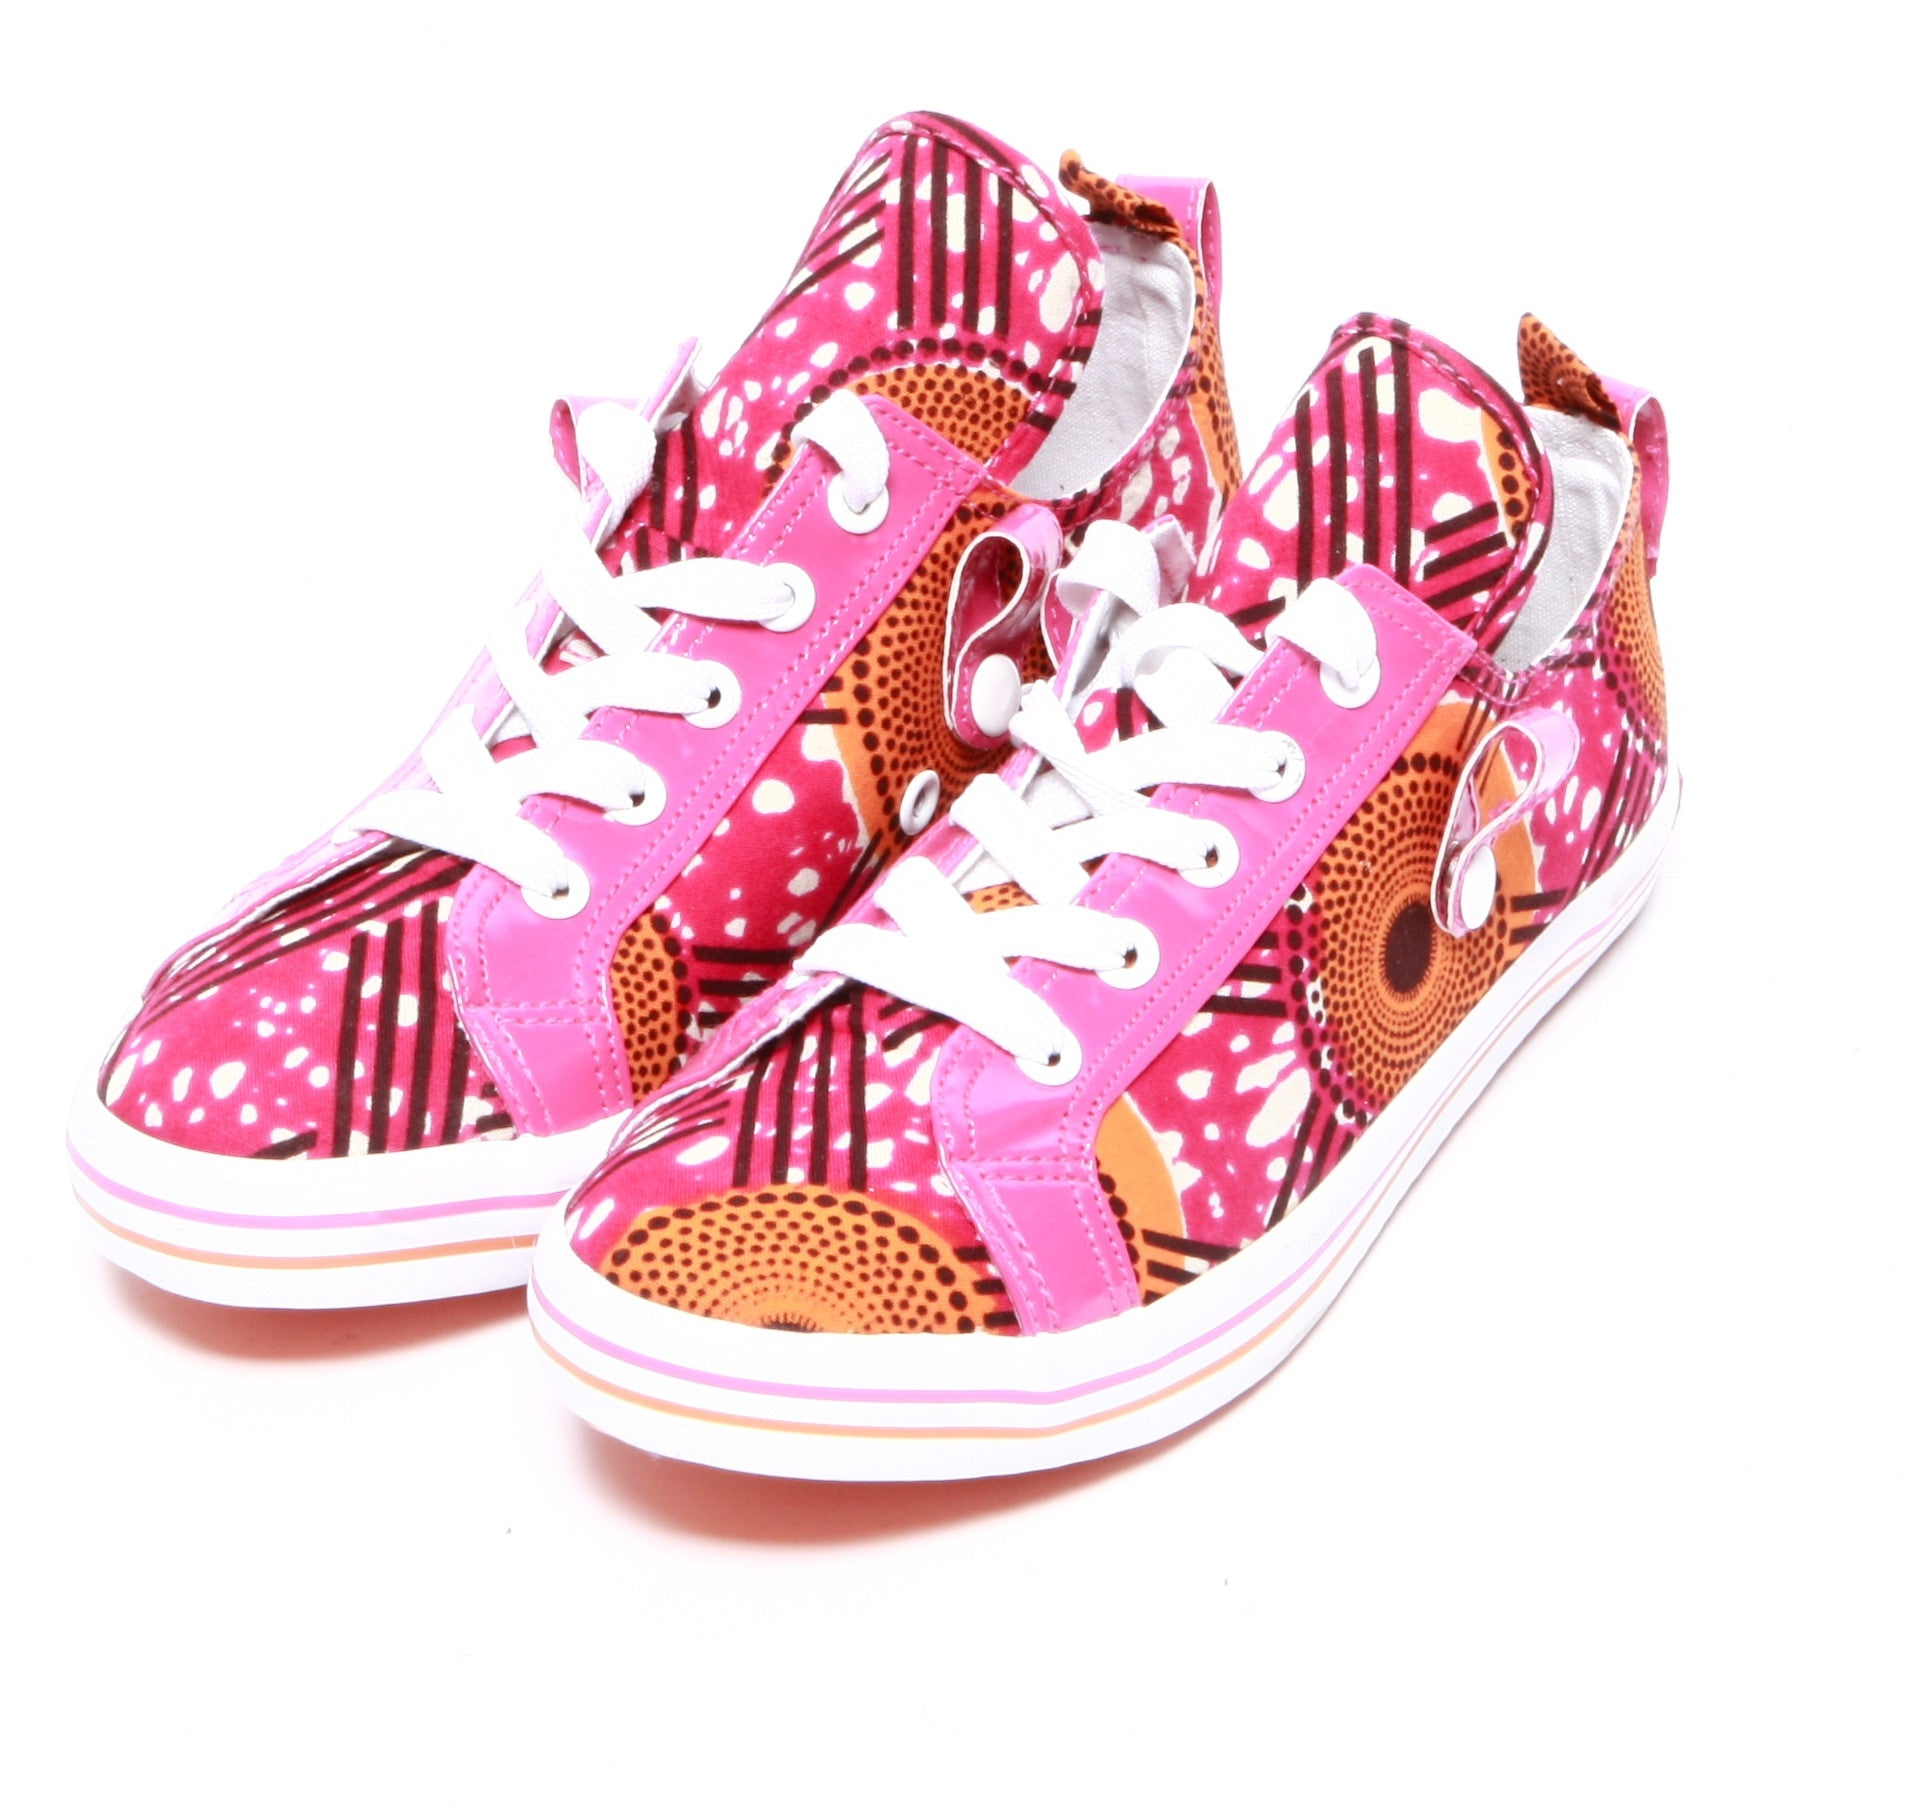 African print Hi Top Sneaker-Hot Star - OHEMA OHENE AFRICAN INSPIRED FASHION  - 3